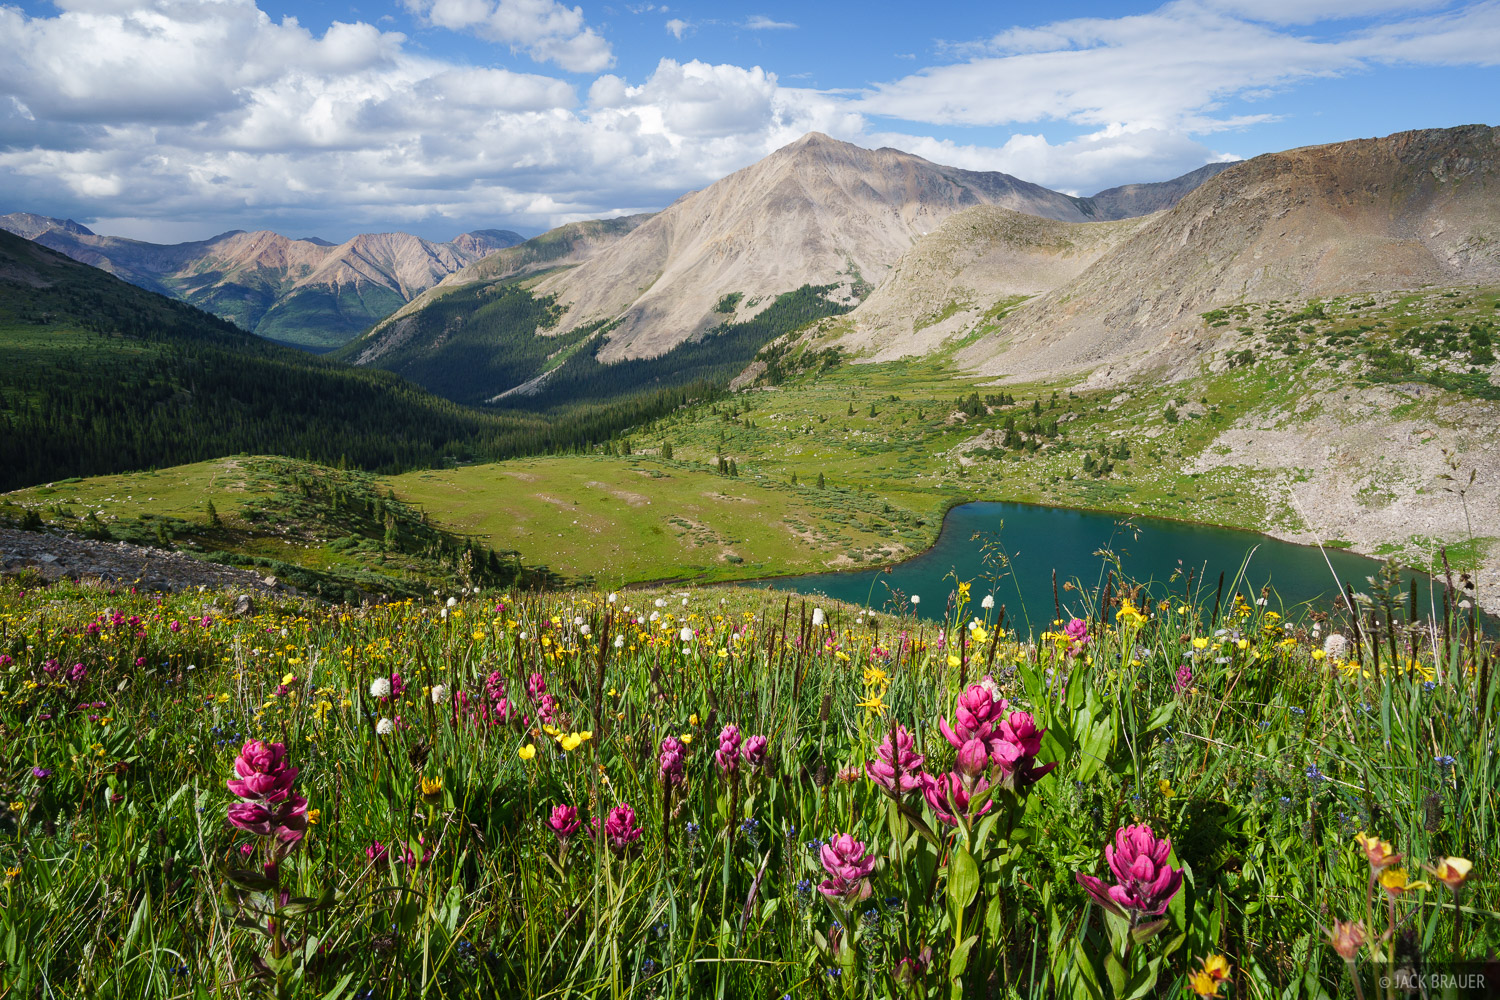 Collegiate Peaks Wilderness, Colorado, Huron Peak, Lake Ann, Sawatch Range, wildflowers, photo